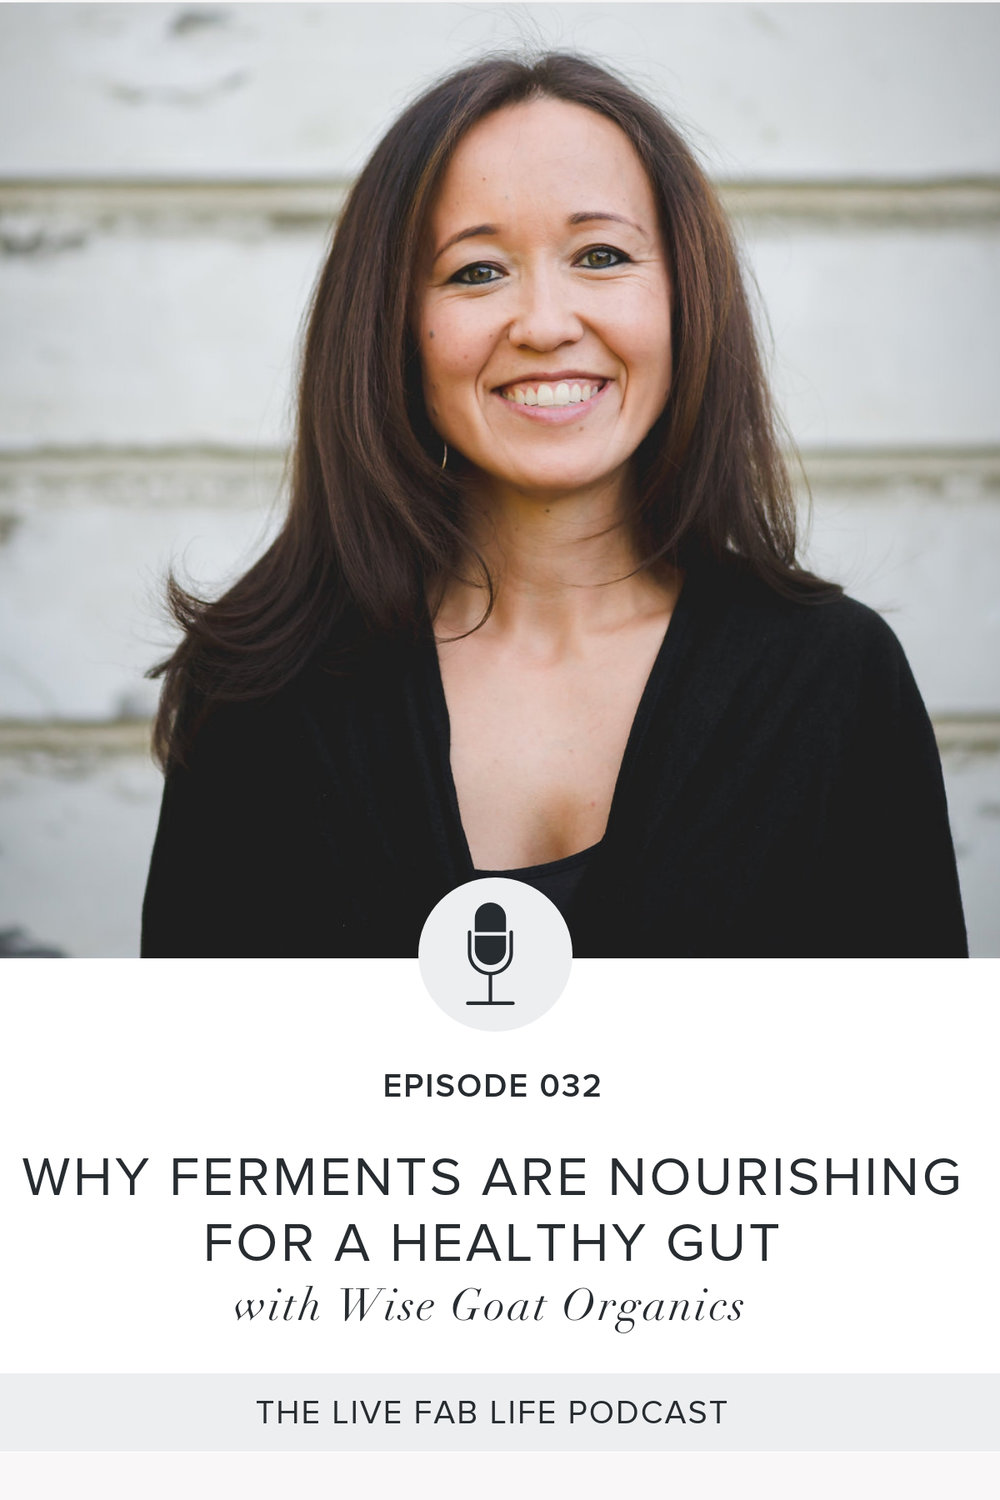 Episode 032: Why Ferments Are Nourishing for A Healthy Gut with Wise Goat Organics